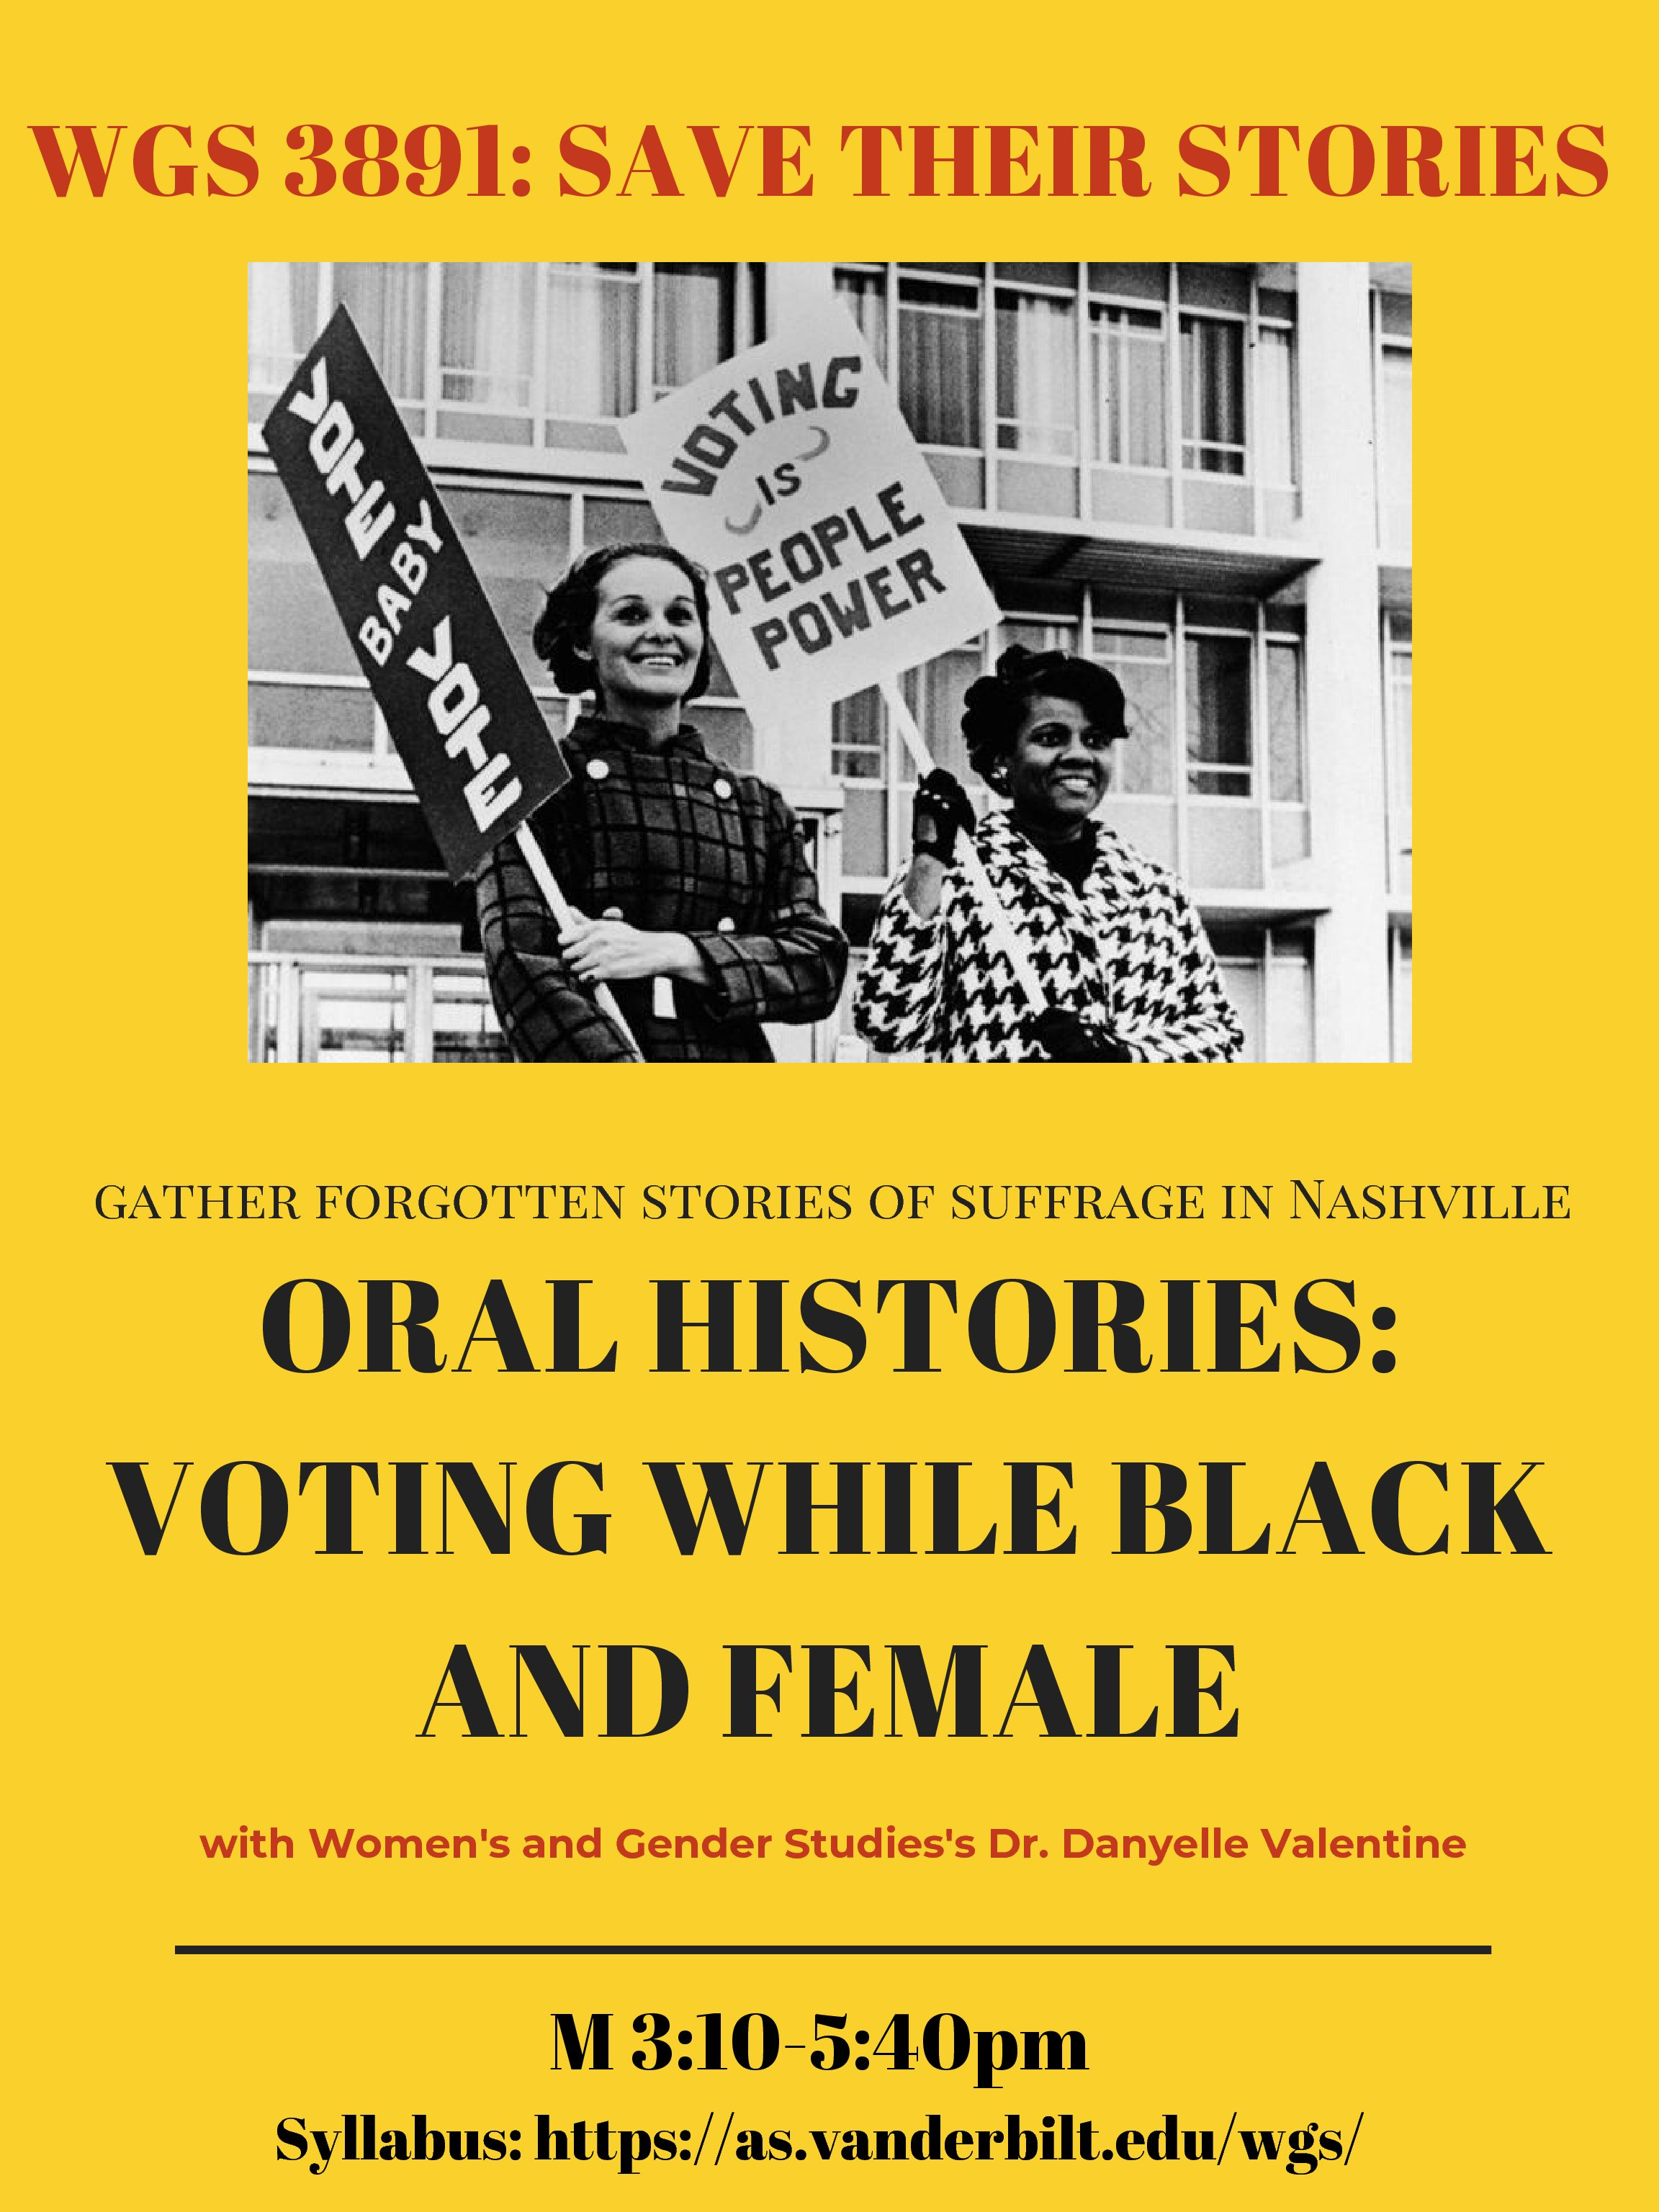 New WGS course Fall 2020 Oral Histories: Voting While Black and Female